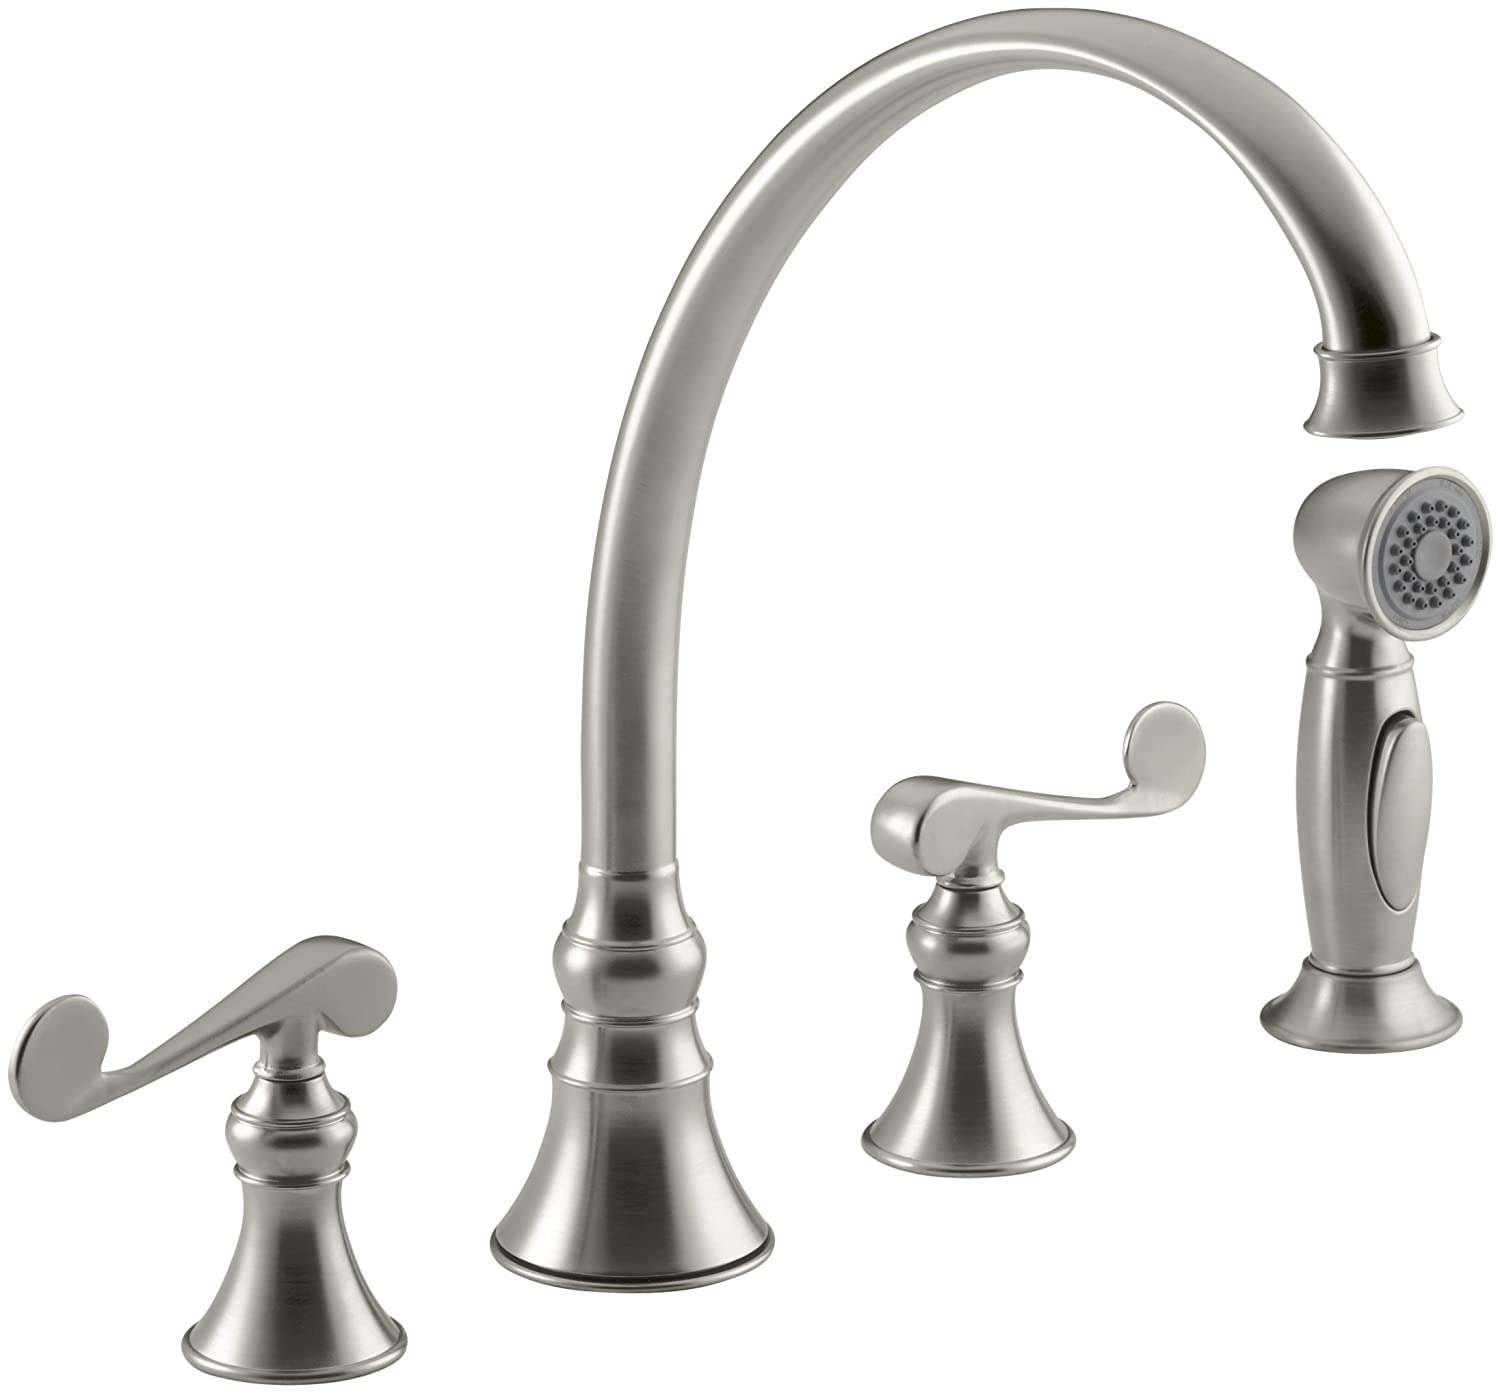 KOHLER Revival Kitchen Sink Faucet king s revival